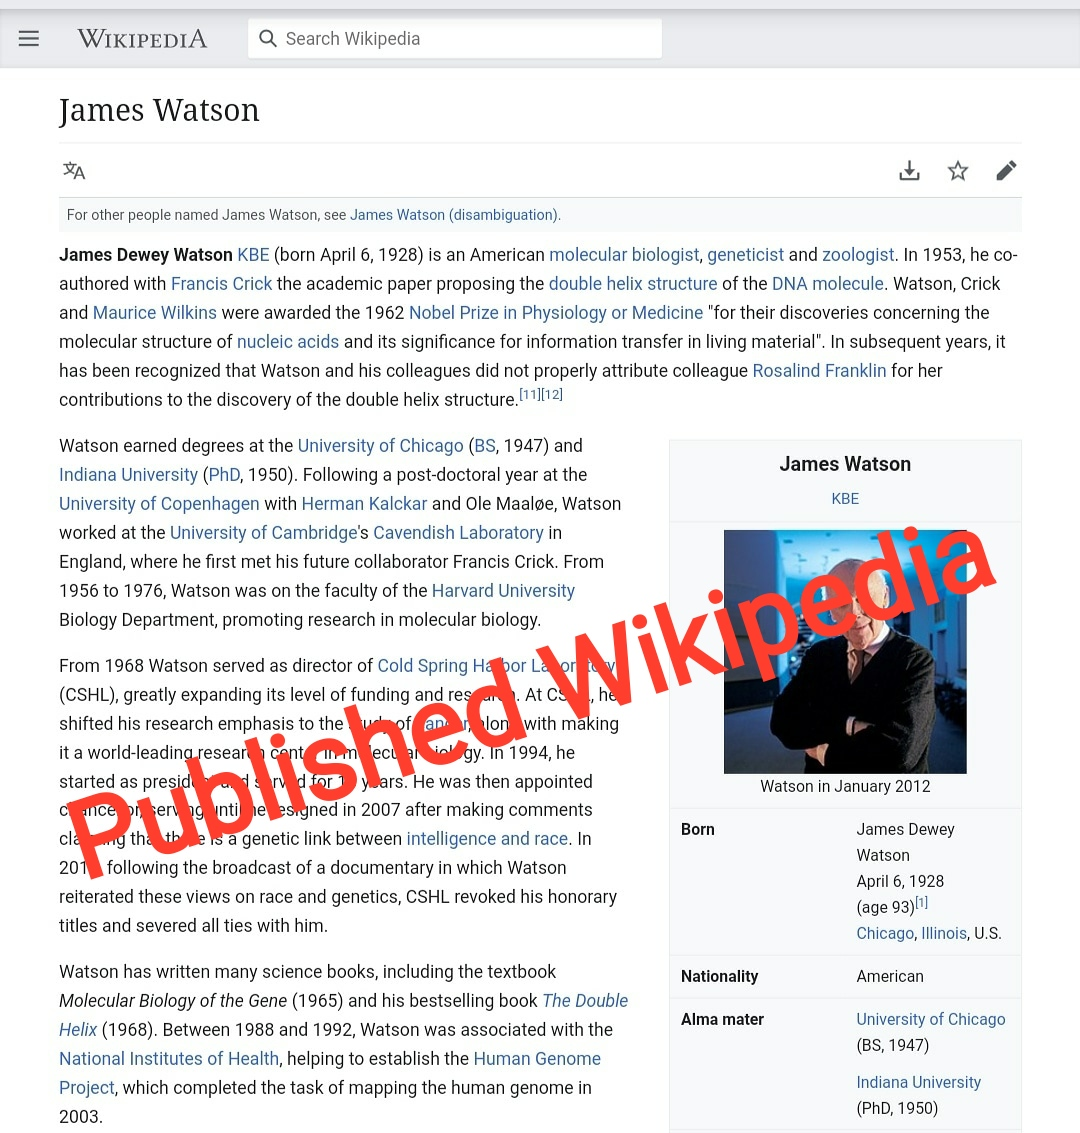 Wikipedia published page creation